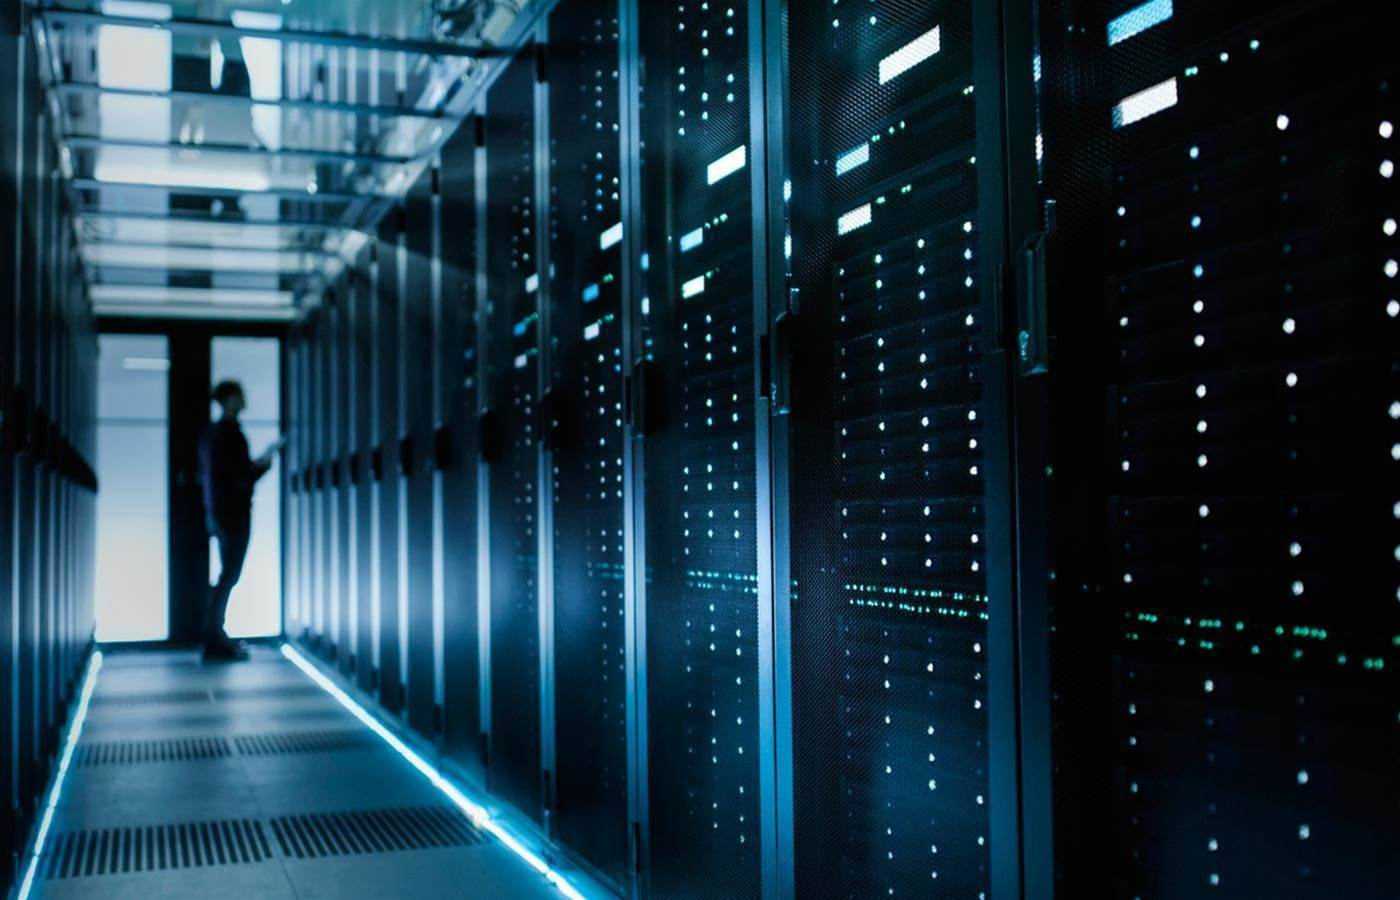 RSA to host SecurID Access locally in Microsoft Azure's datacentre in Canberra